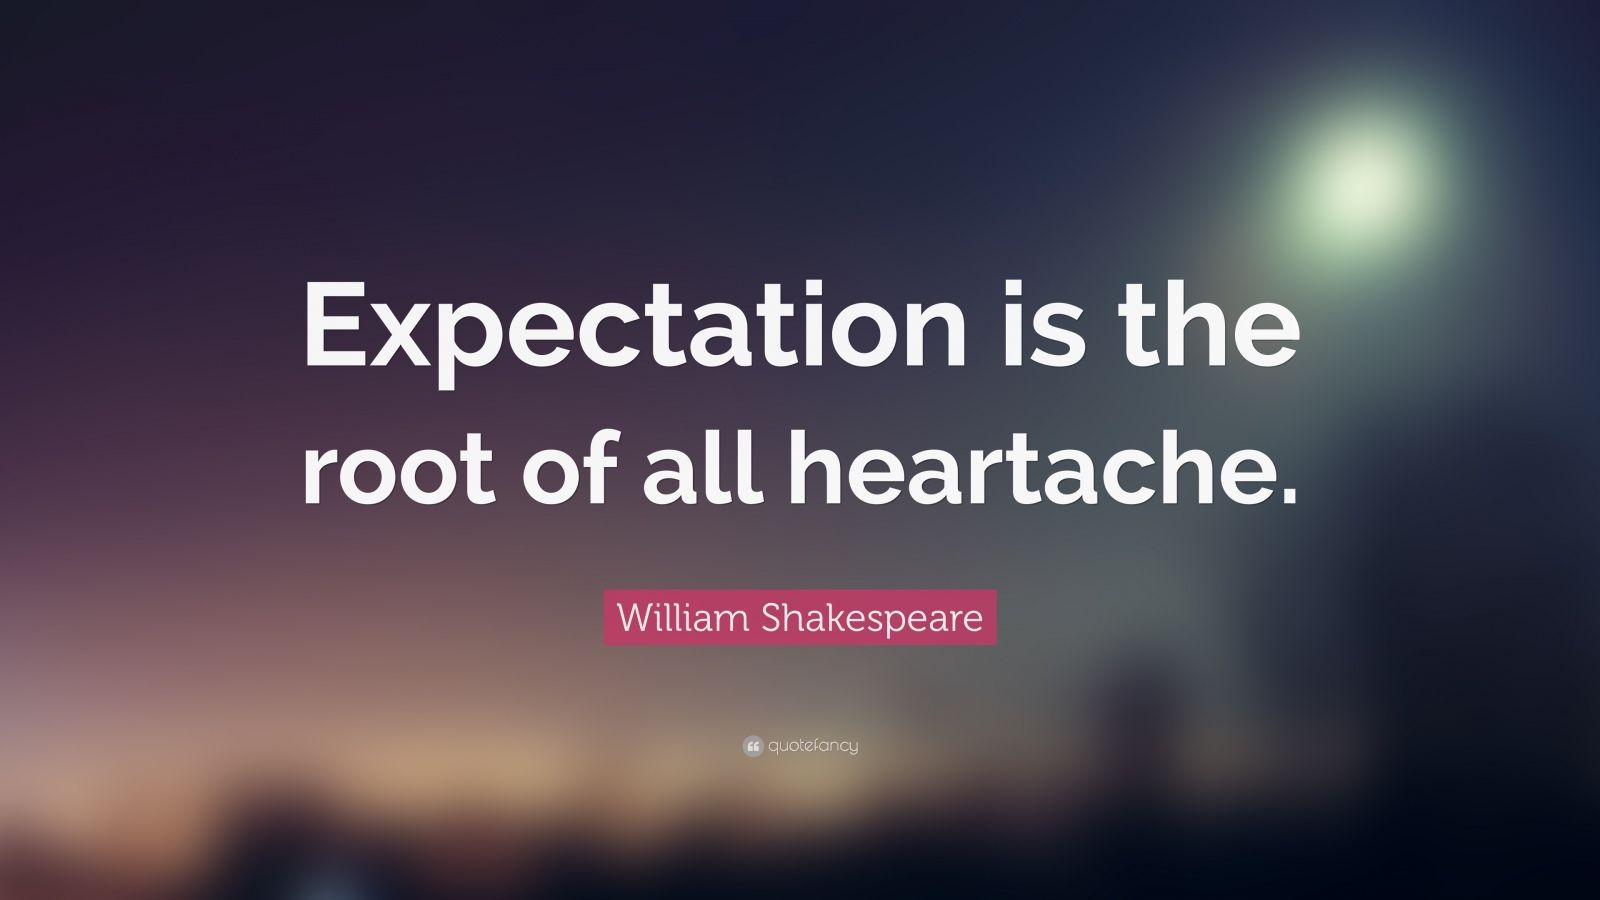 Inspiring Quotes With Wallpapers William Shakespeare Quote Expectation Is The Root Of All